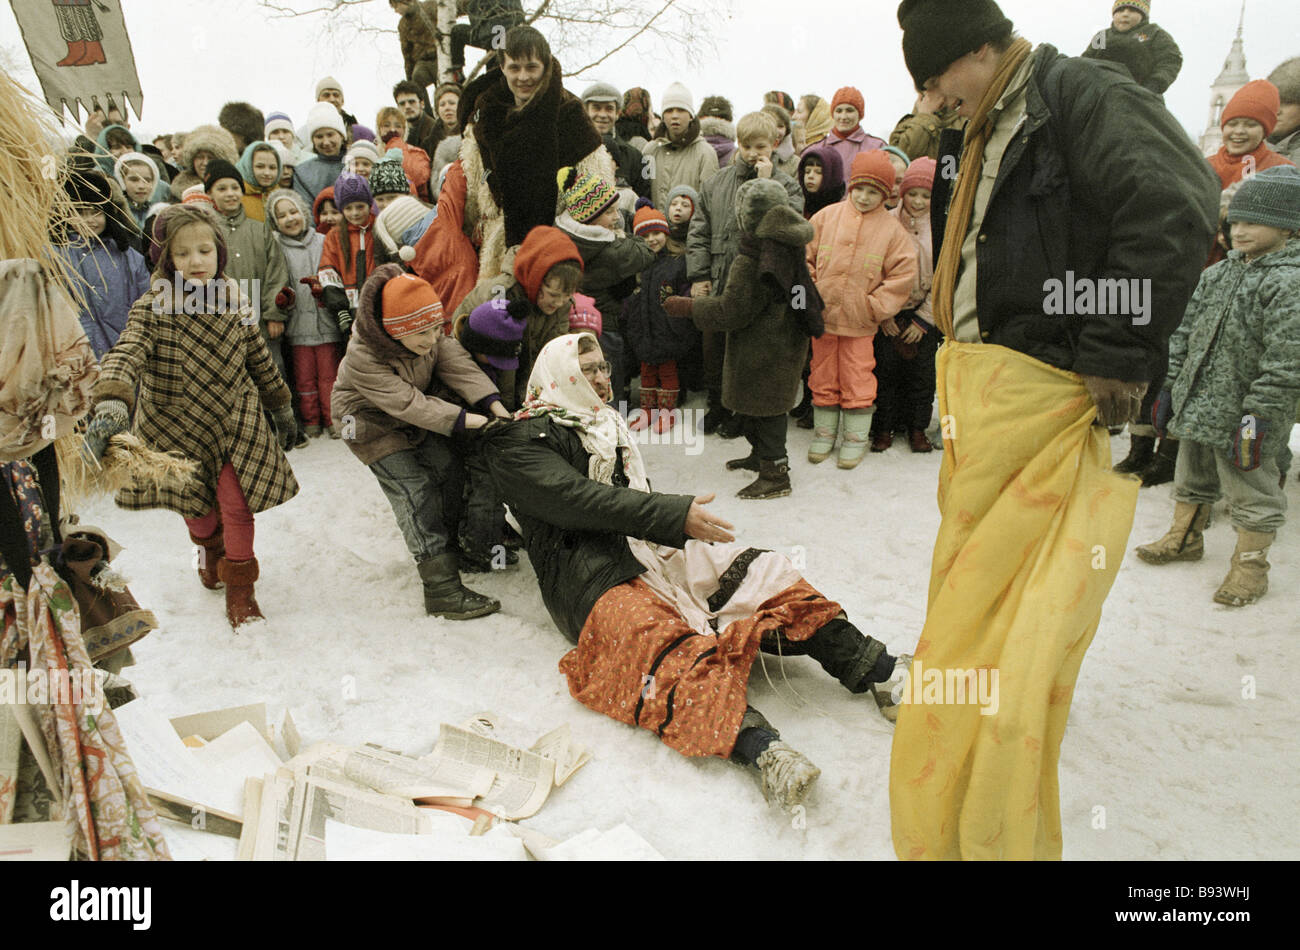 Mardi gras festivities in the Vologda Region - Stock Image